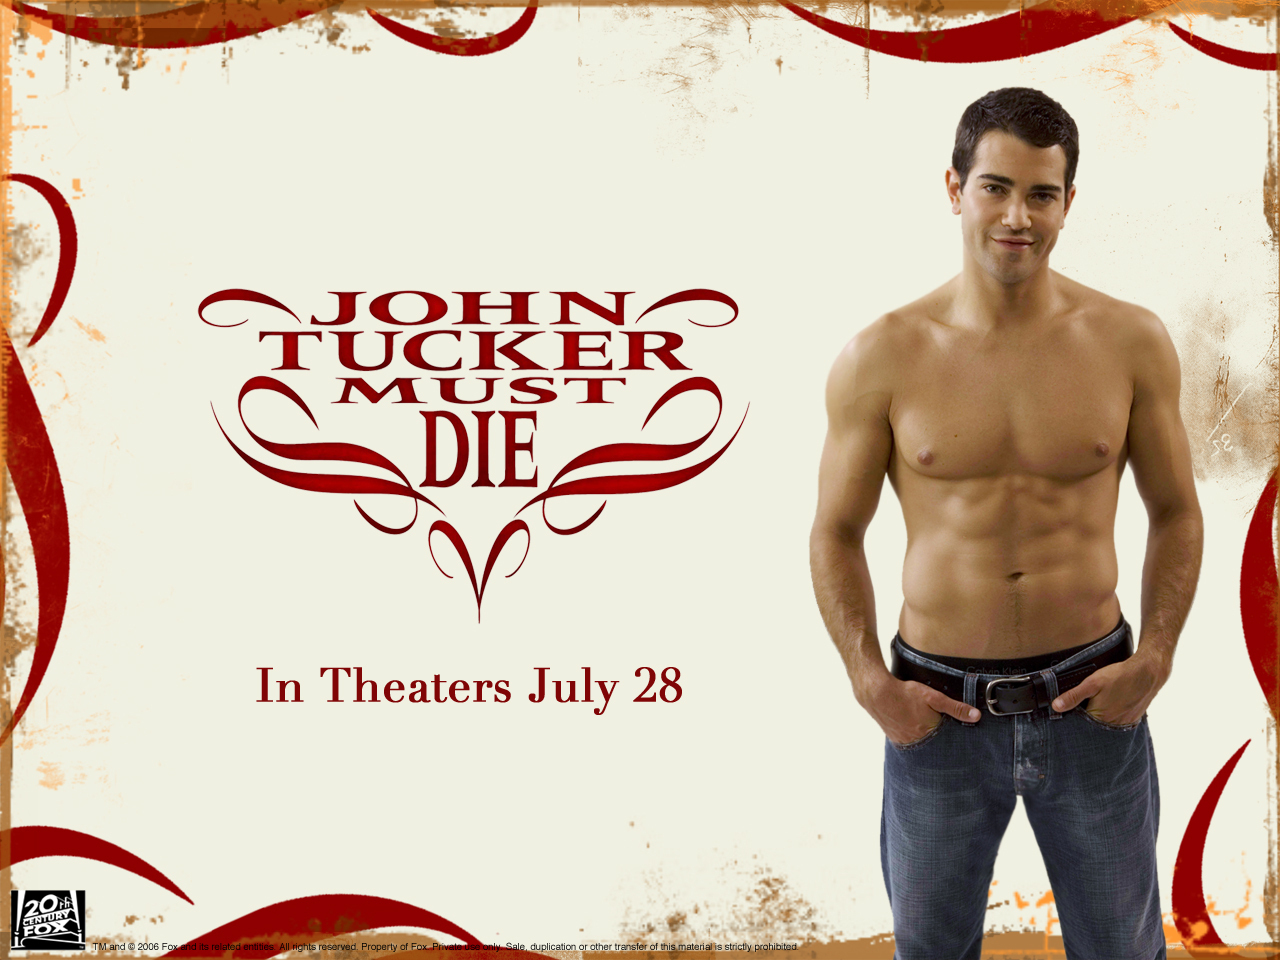 john tucker must die The dvd release of john tucker must die (which has both the theatrical release and a microscopically different extended cut) has a bunch of useless extras, including two meager deleted scenes, a music video from a band you'll never hear from again, the usual lovefest from the cast (i loved working with so-and-so), a bit of ego-stroking.